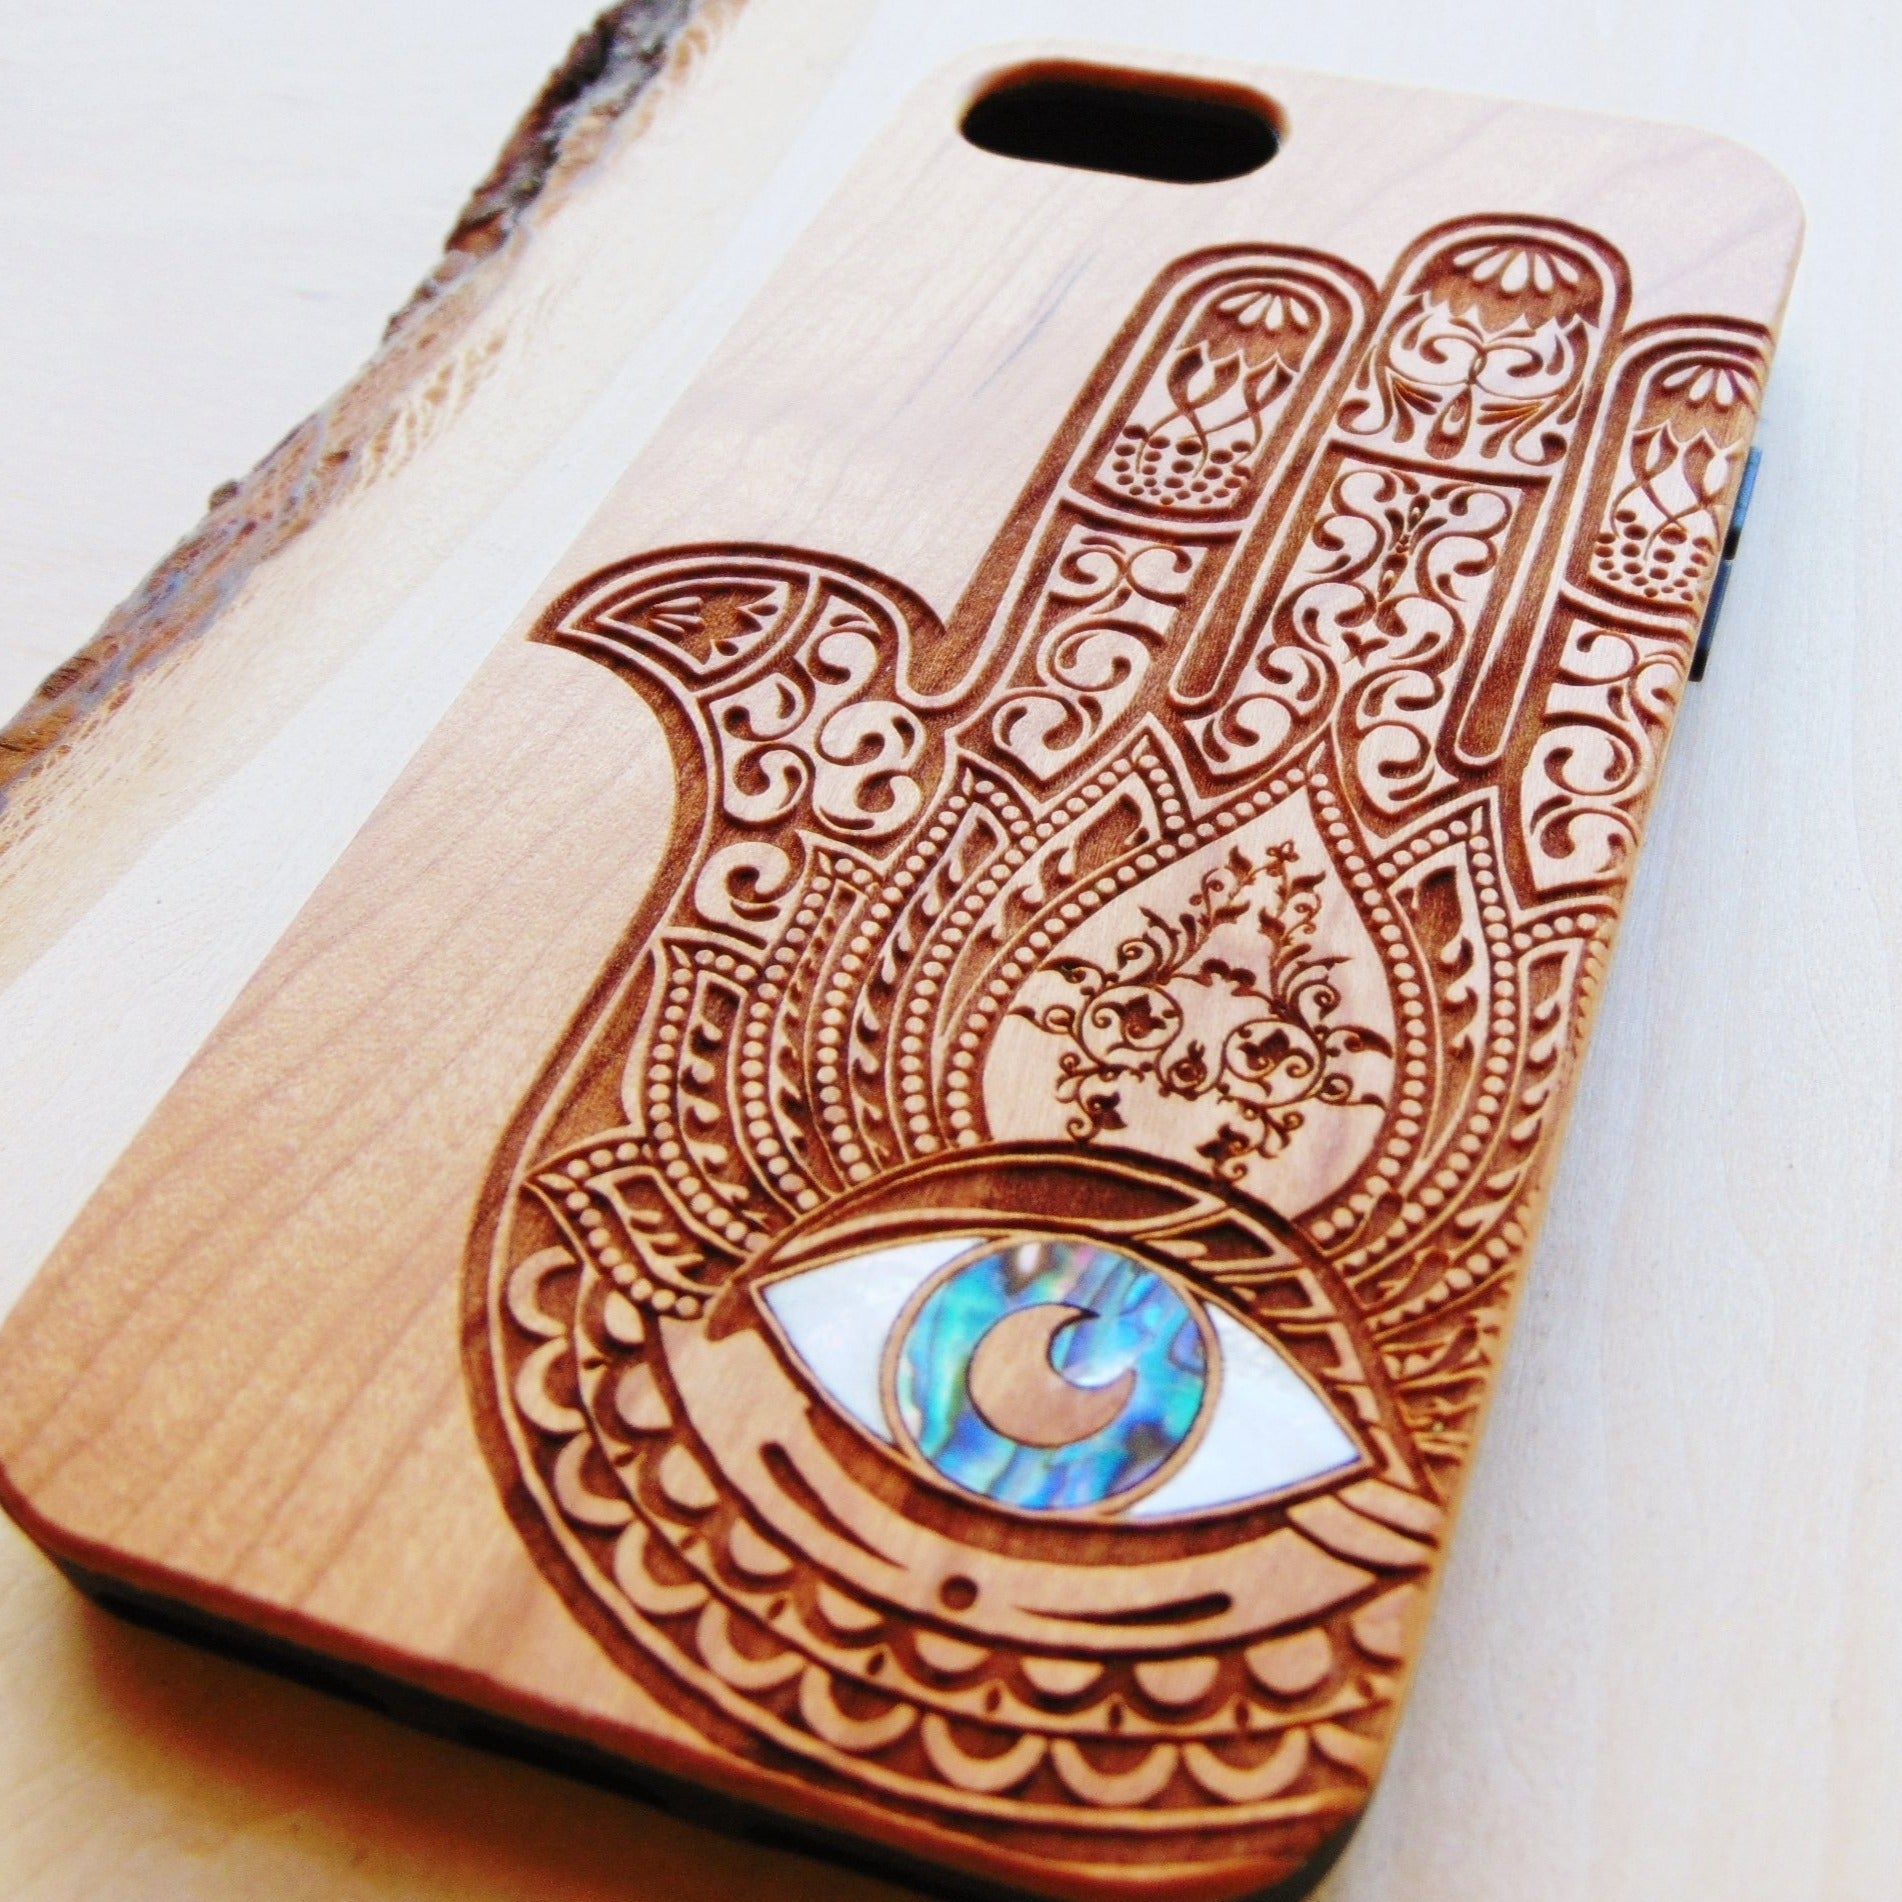 hamsa design wooden phone case with abalone shell inlay